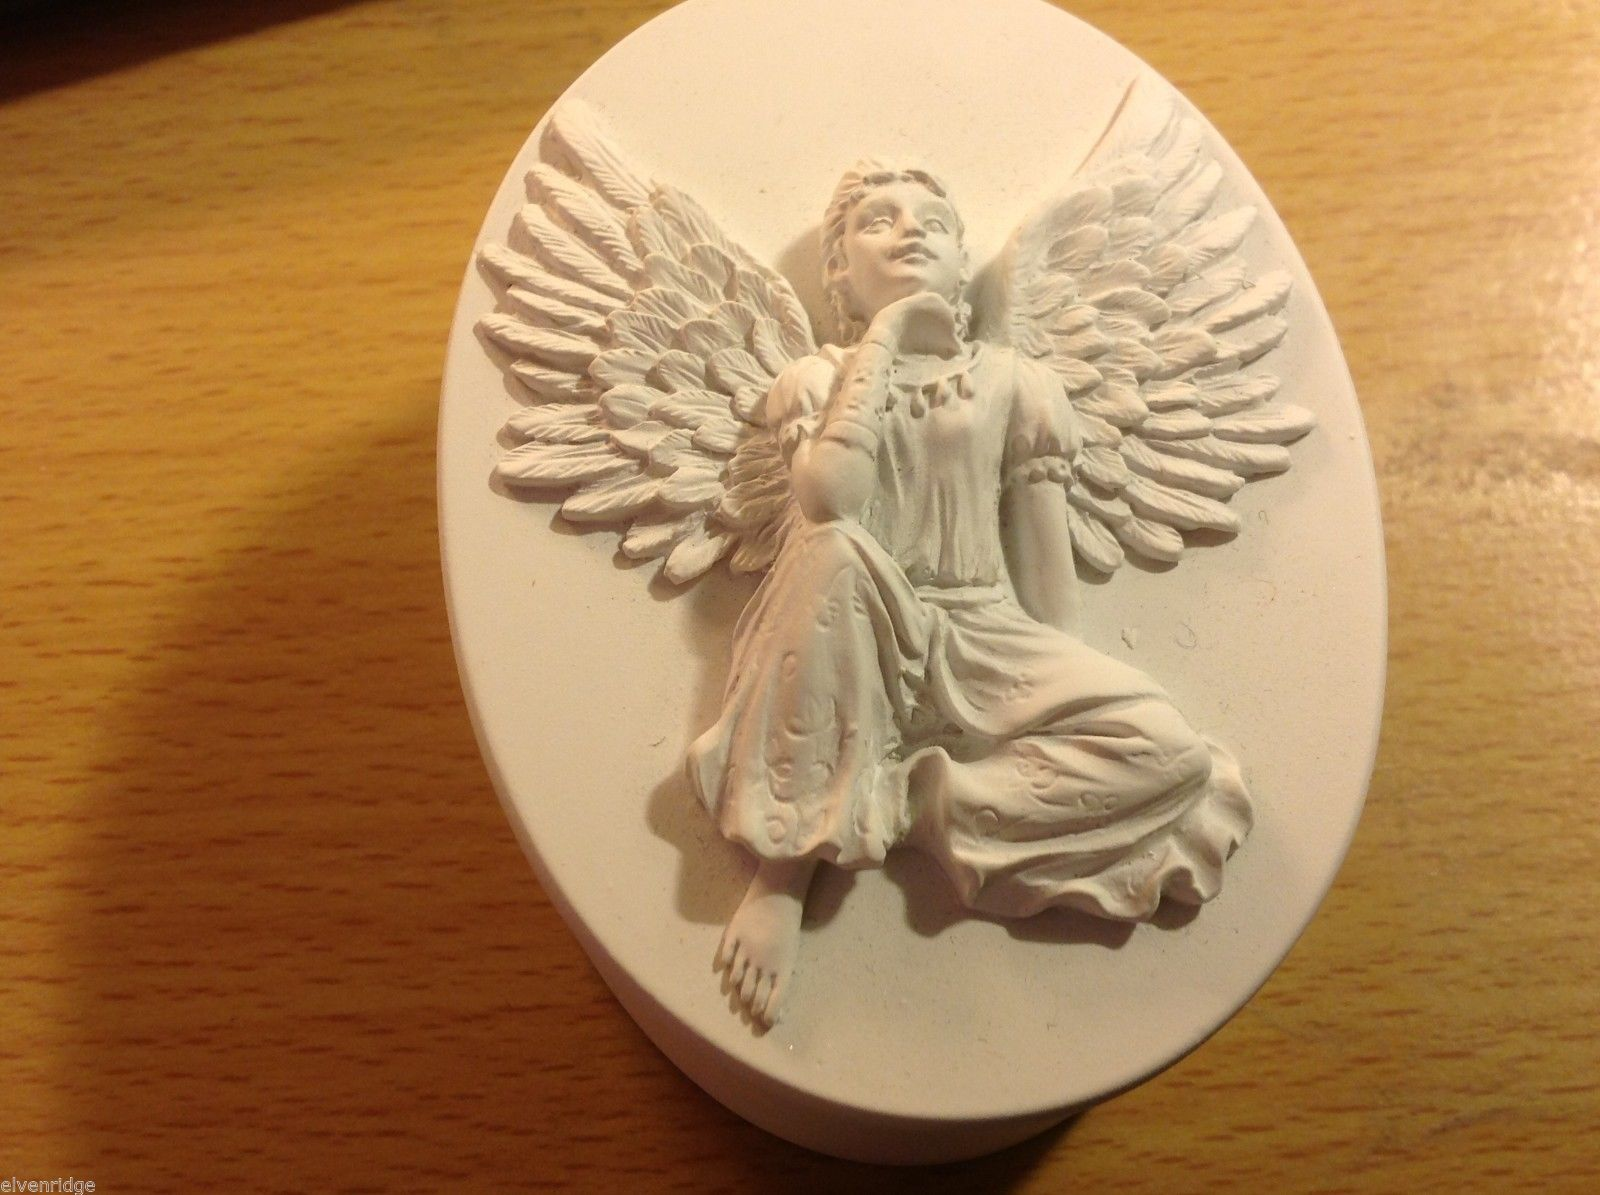 Primary image for Angel trinket box  oval with young girl angel on lid and wings inside